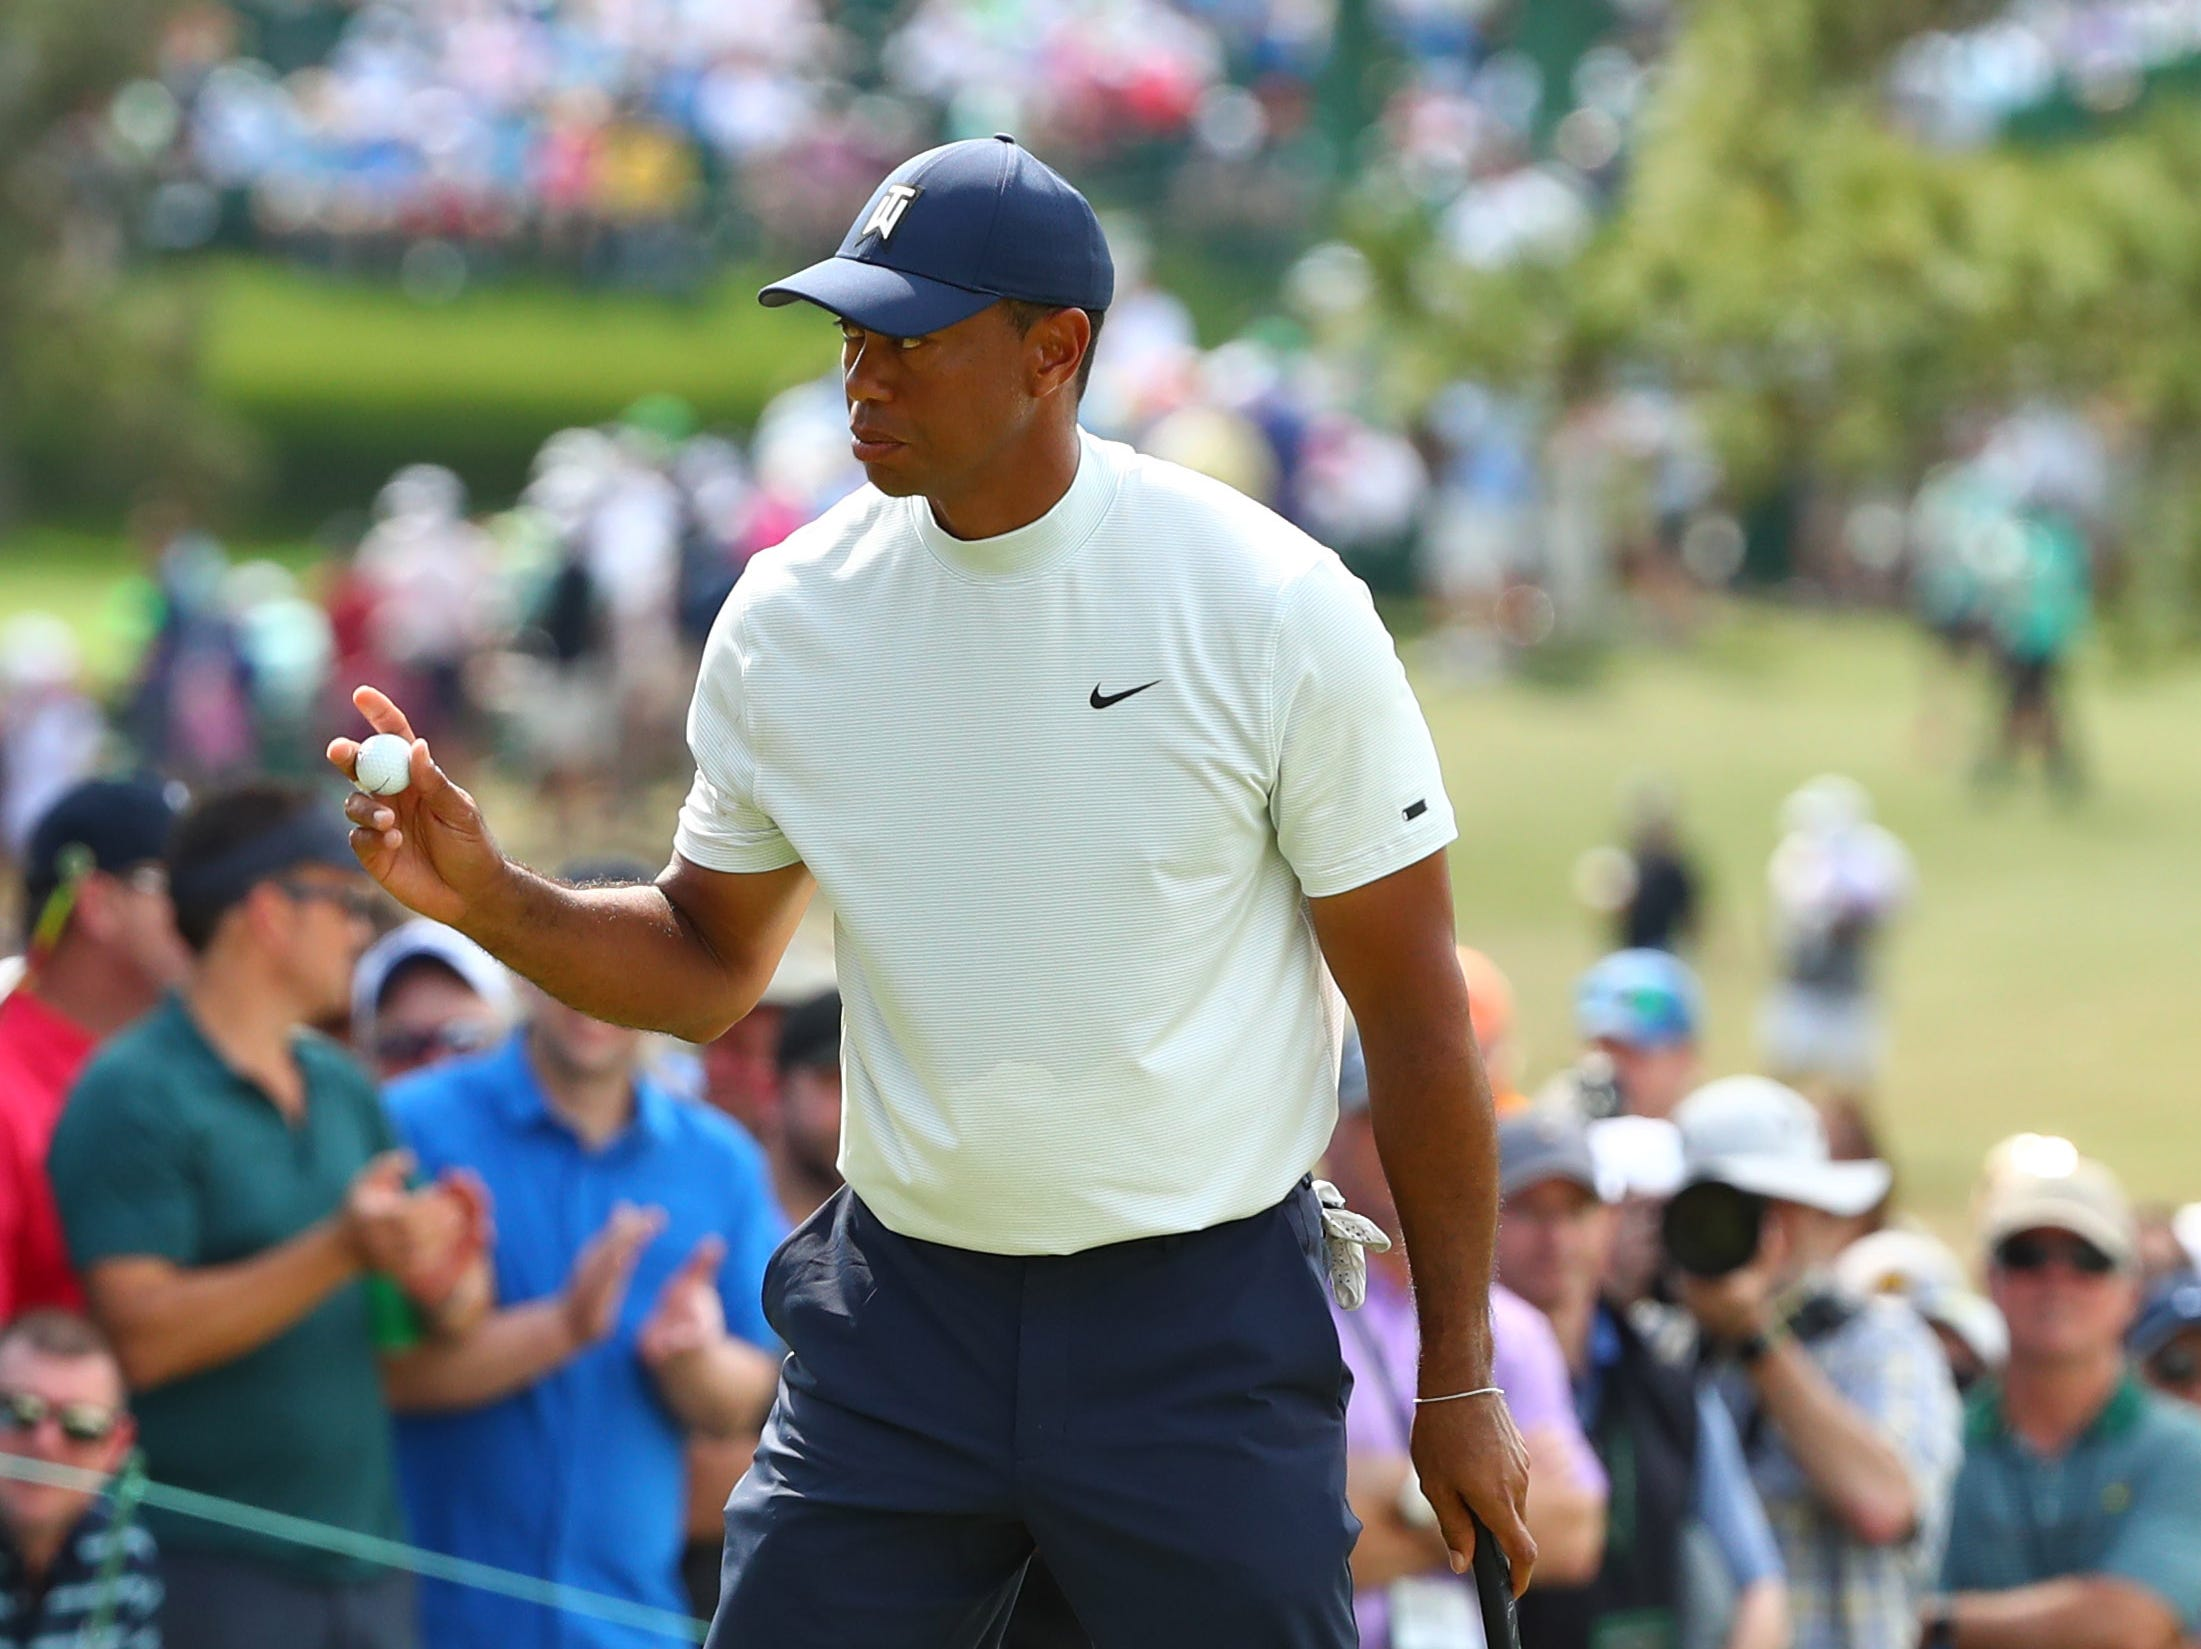 Apr 12, 2019; Augusta, GA, USA; Tiger Woods after putting on the 7th green during the second round of The Masters golf tournament at Augusta National Golf Club. Mandatory Credit: Rob Schumacher-USA TODAY Sports